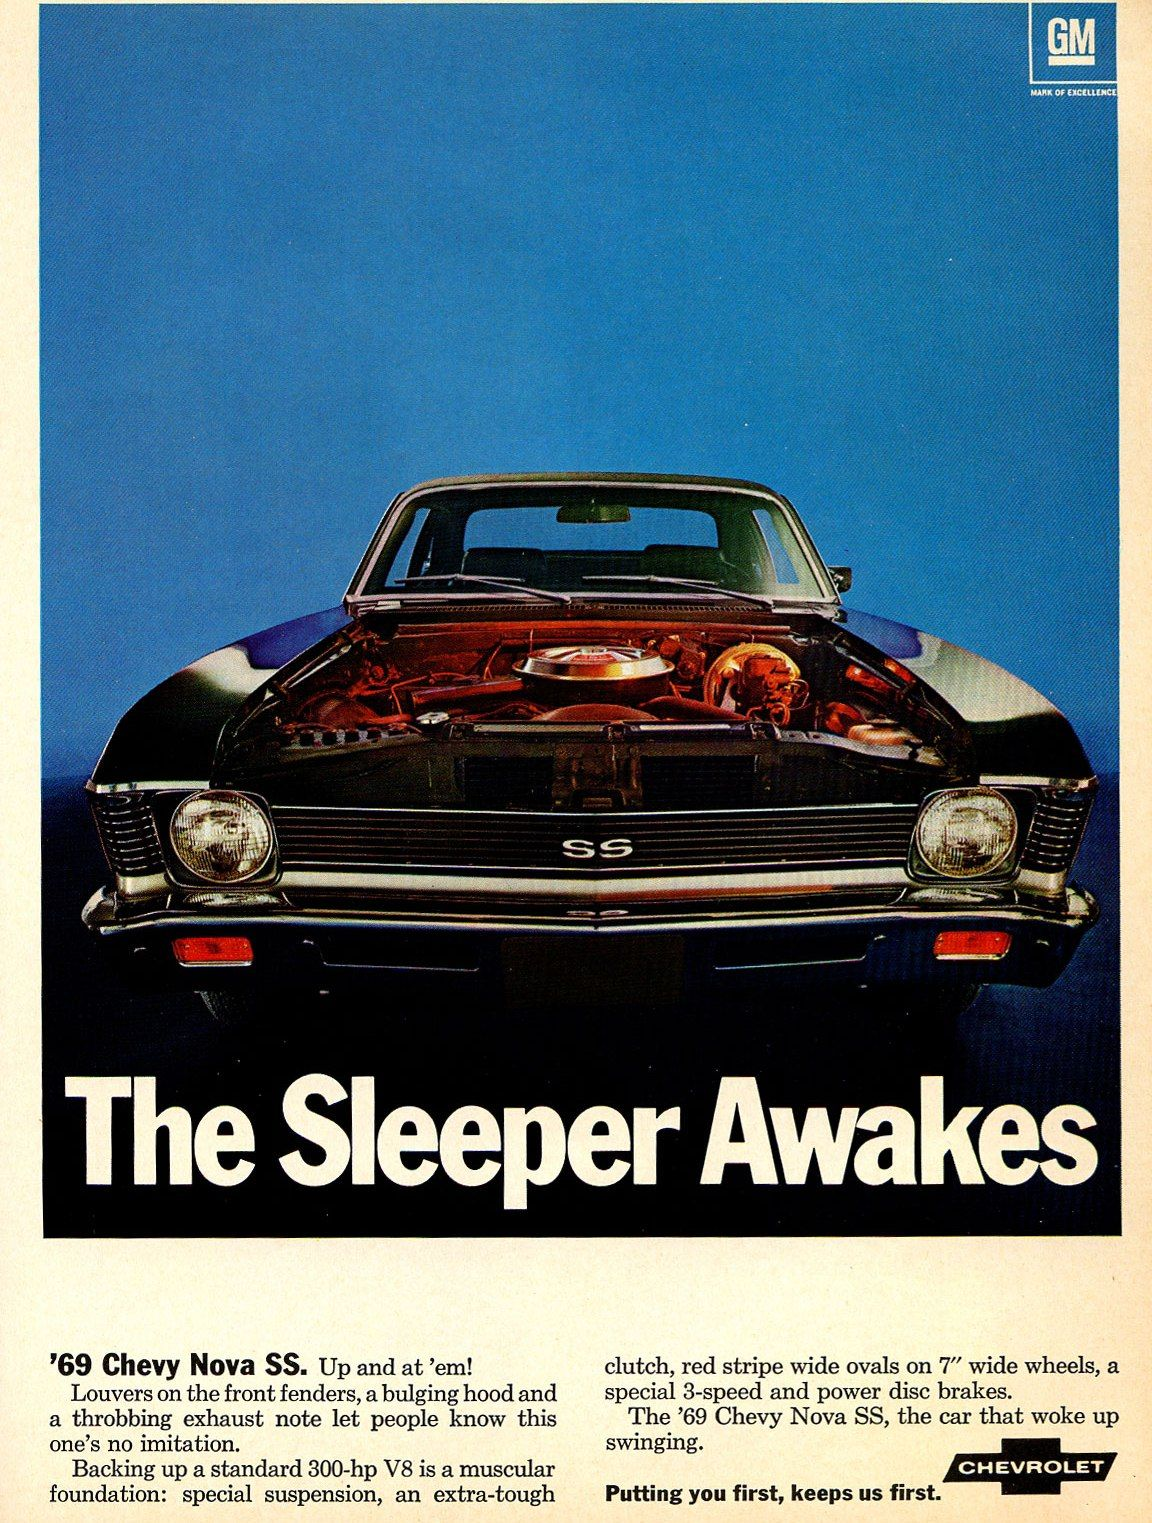 Today we ve uncovered this vintage chevy ad and we want to know can you guess the model and year of the car this is advertising